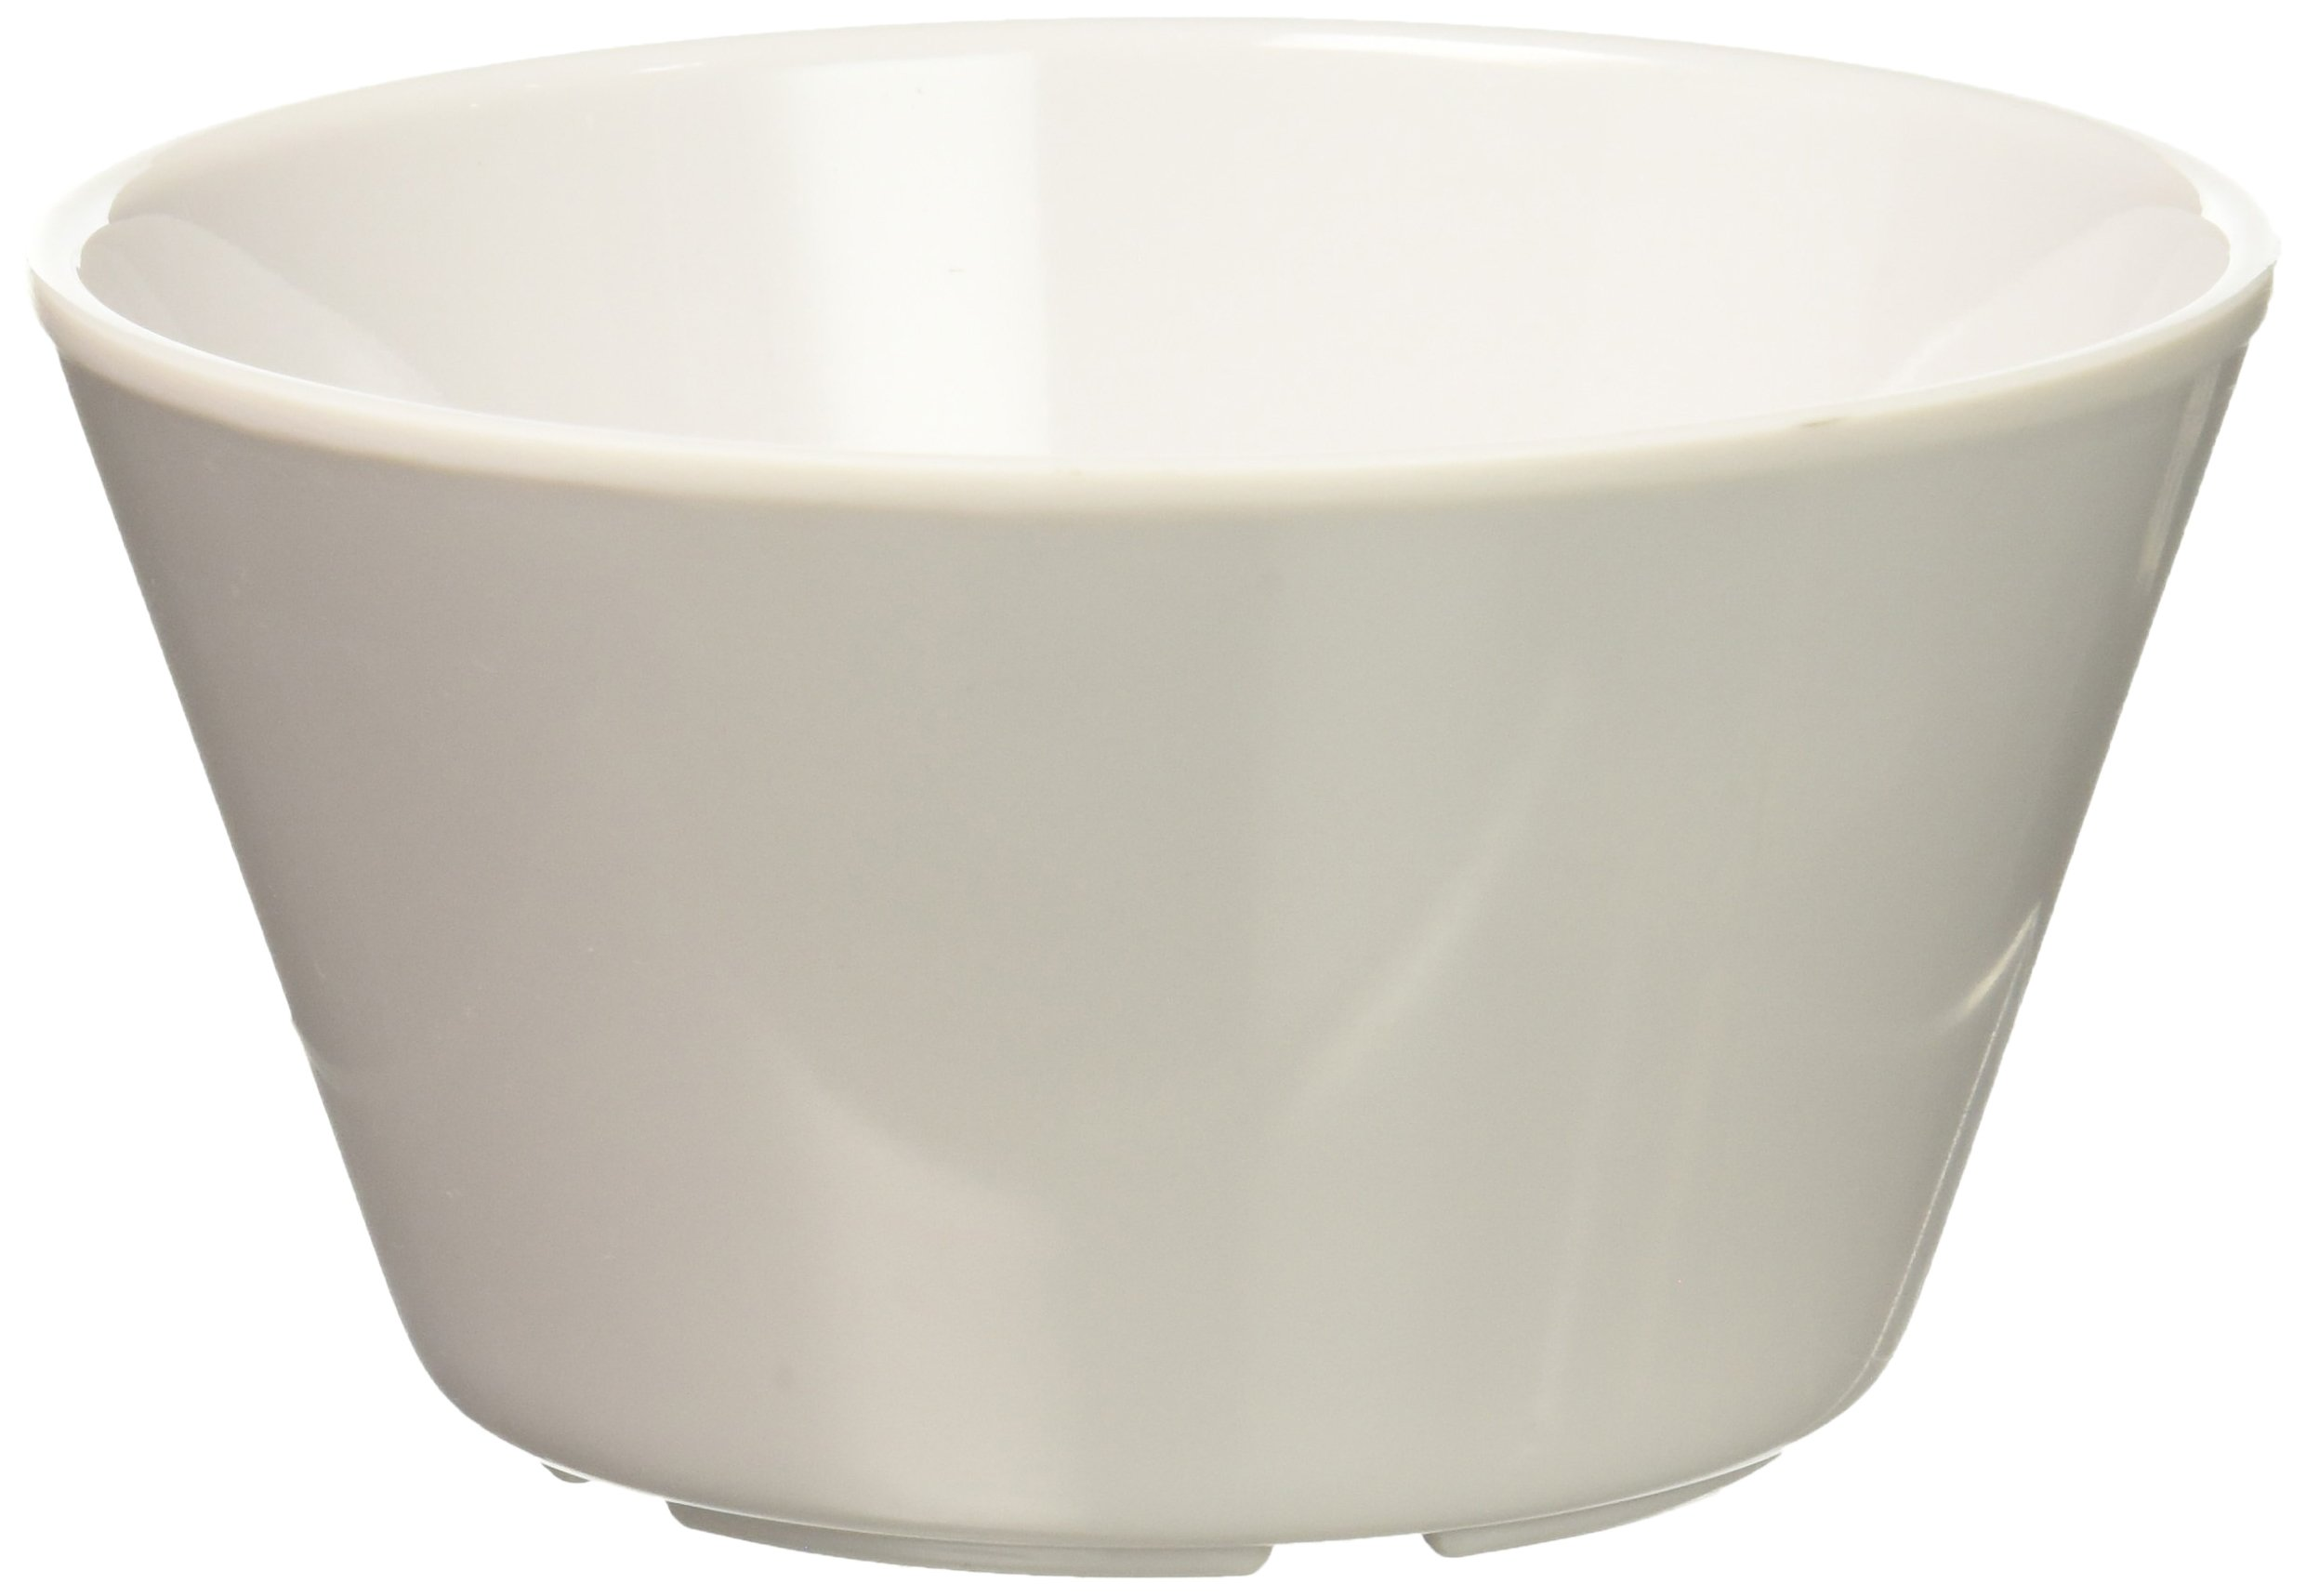 Winco MMB-8W Melamine Bouillon Cup, 8-Ounce, White (Pack of 12) by Winco (Image #1)